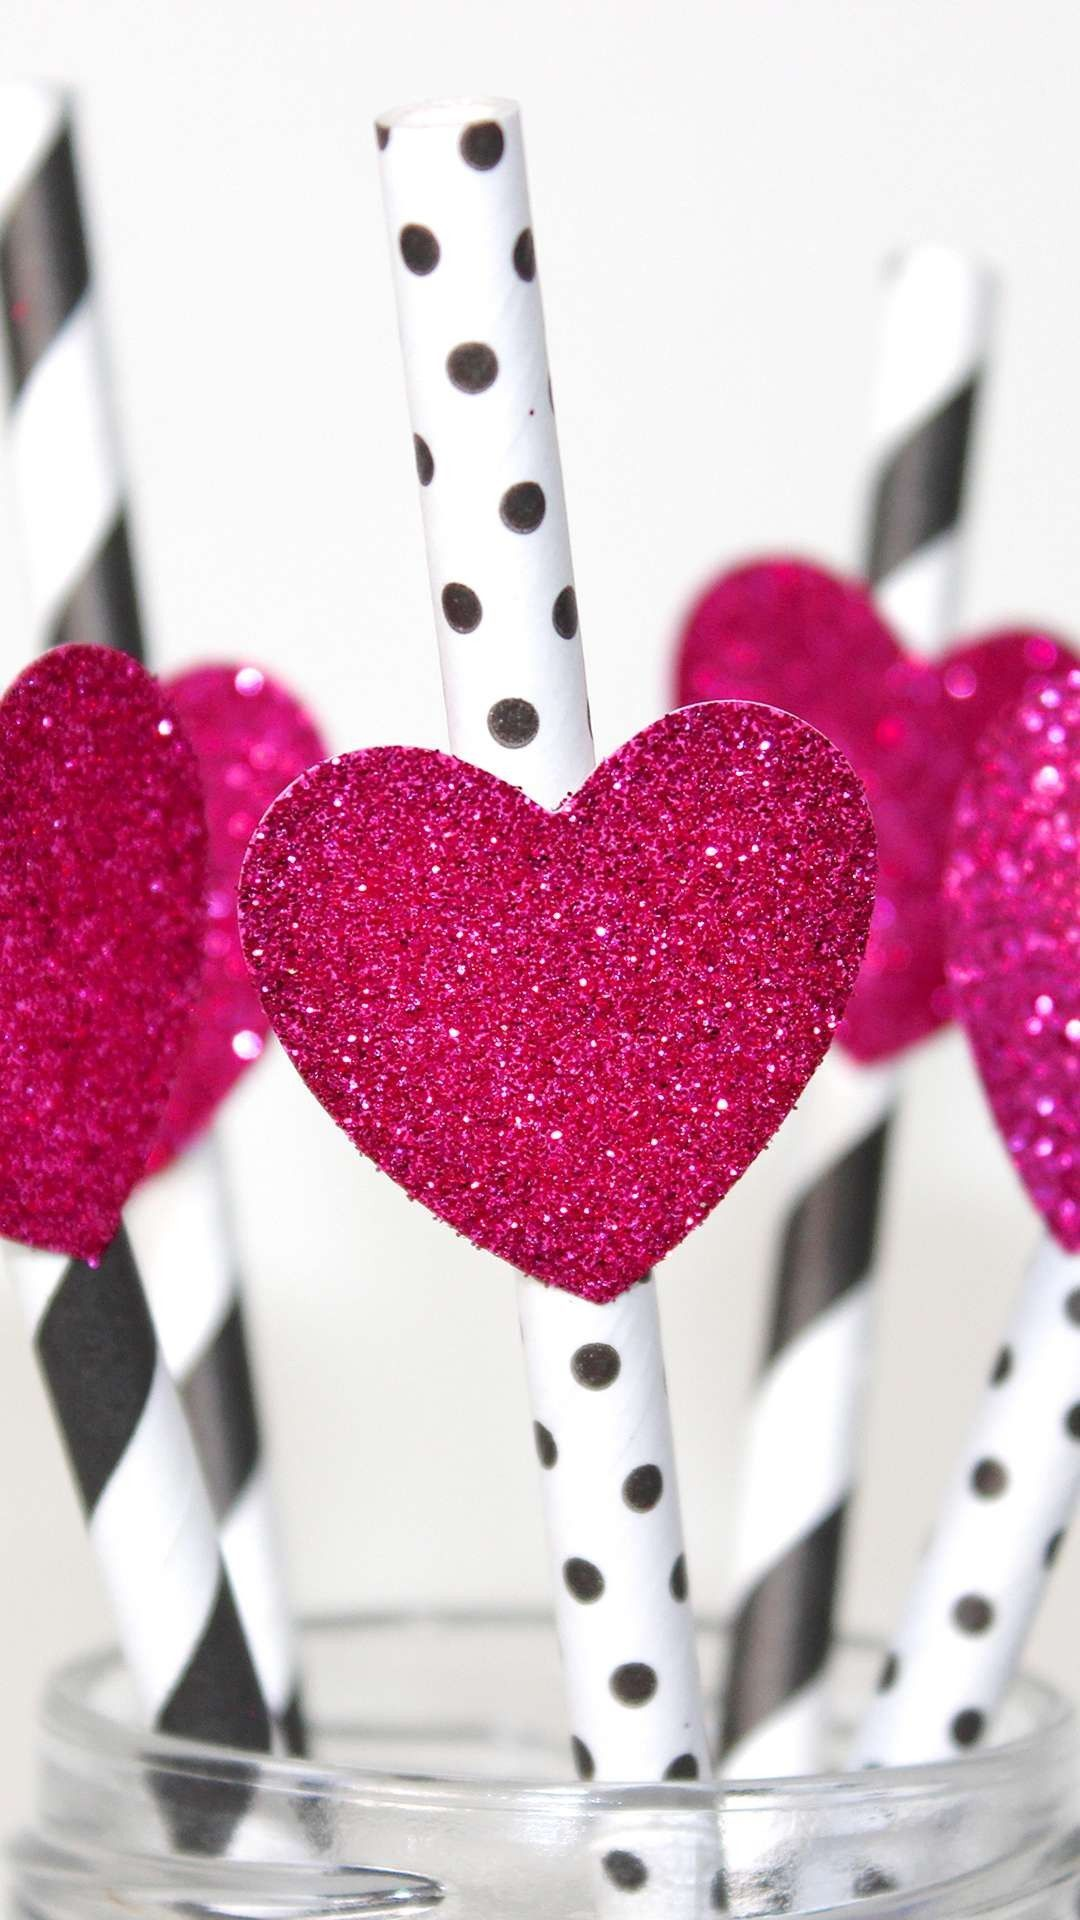 Cute Love Heart Pictures Wallpaperboat